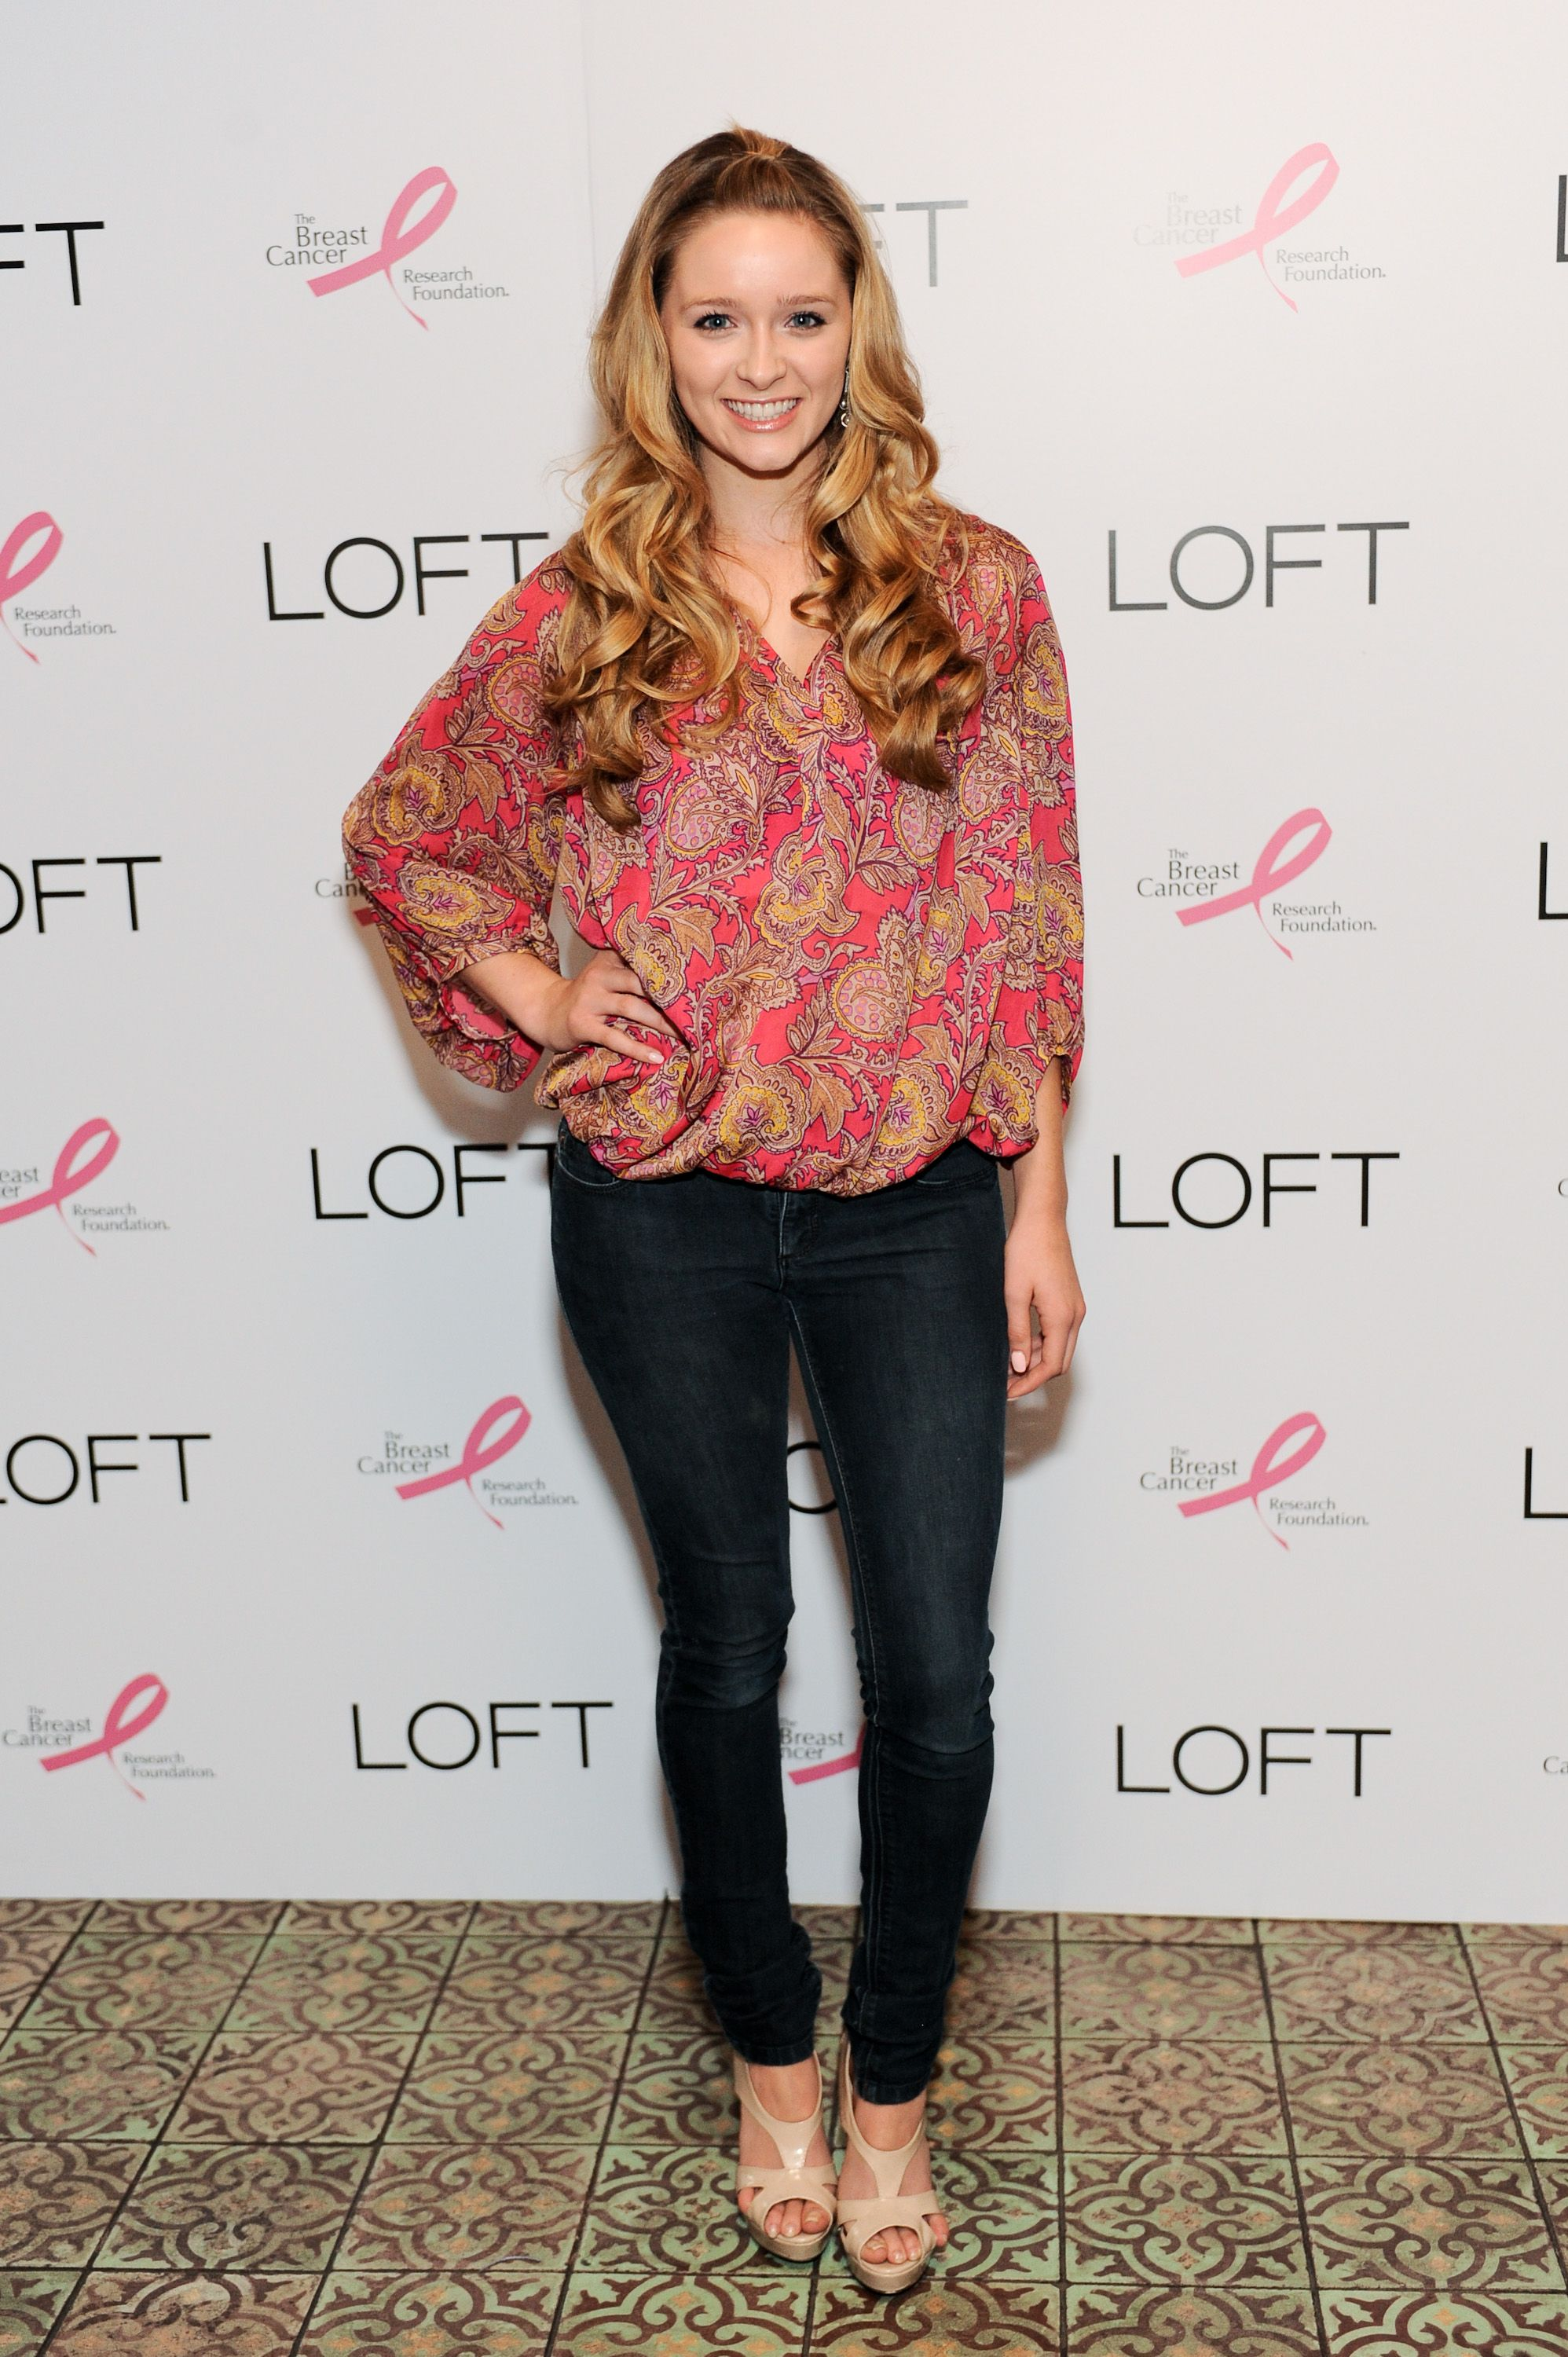 af6fd4ff2d ... LOFT blouse with skinny jeans at the LOFT Live In Pink party on August  15